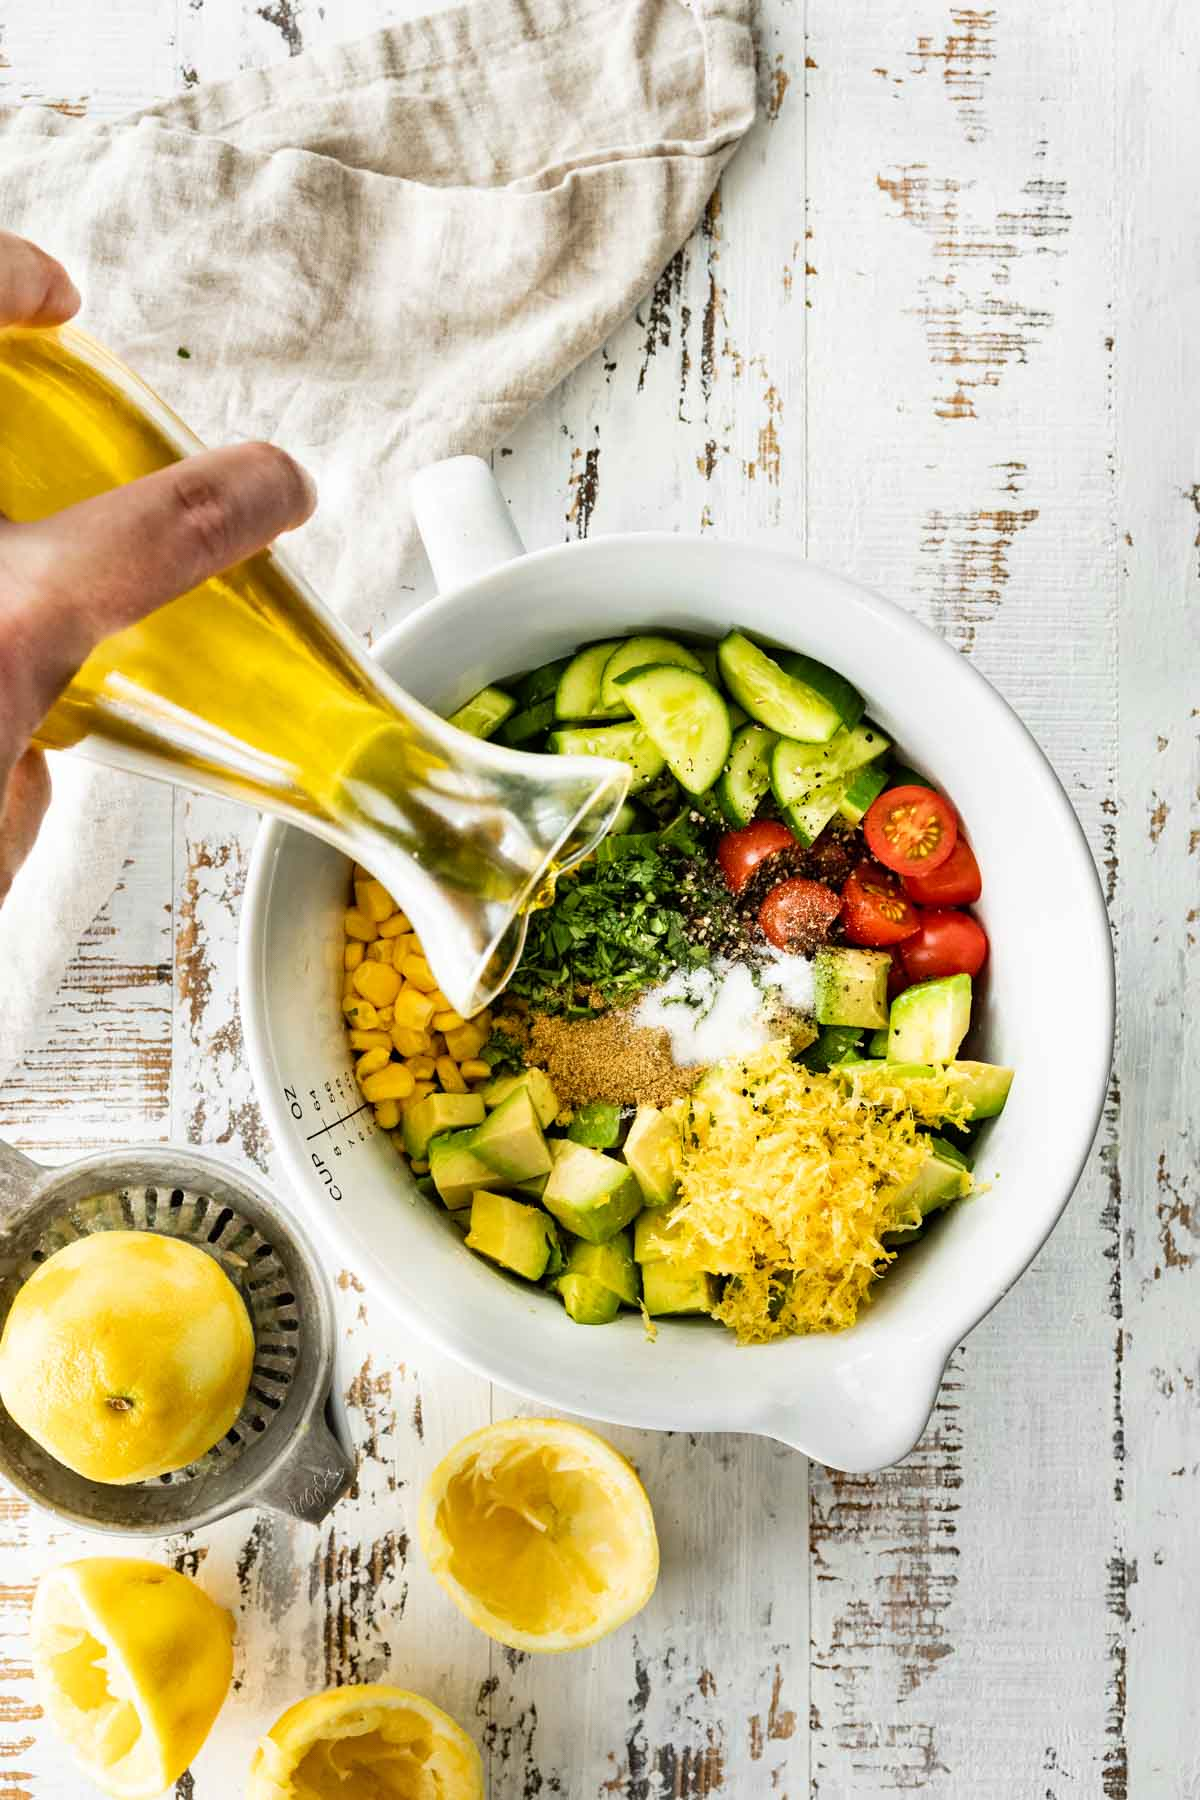 Ingredients for Avocado Tomato Corn Salad in mixing bowl with dressing being poured